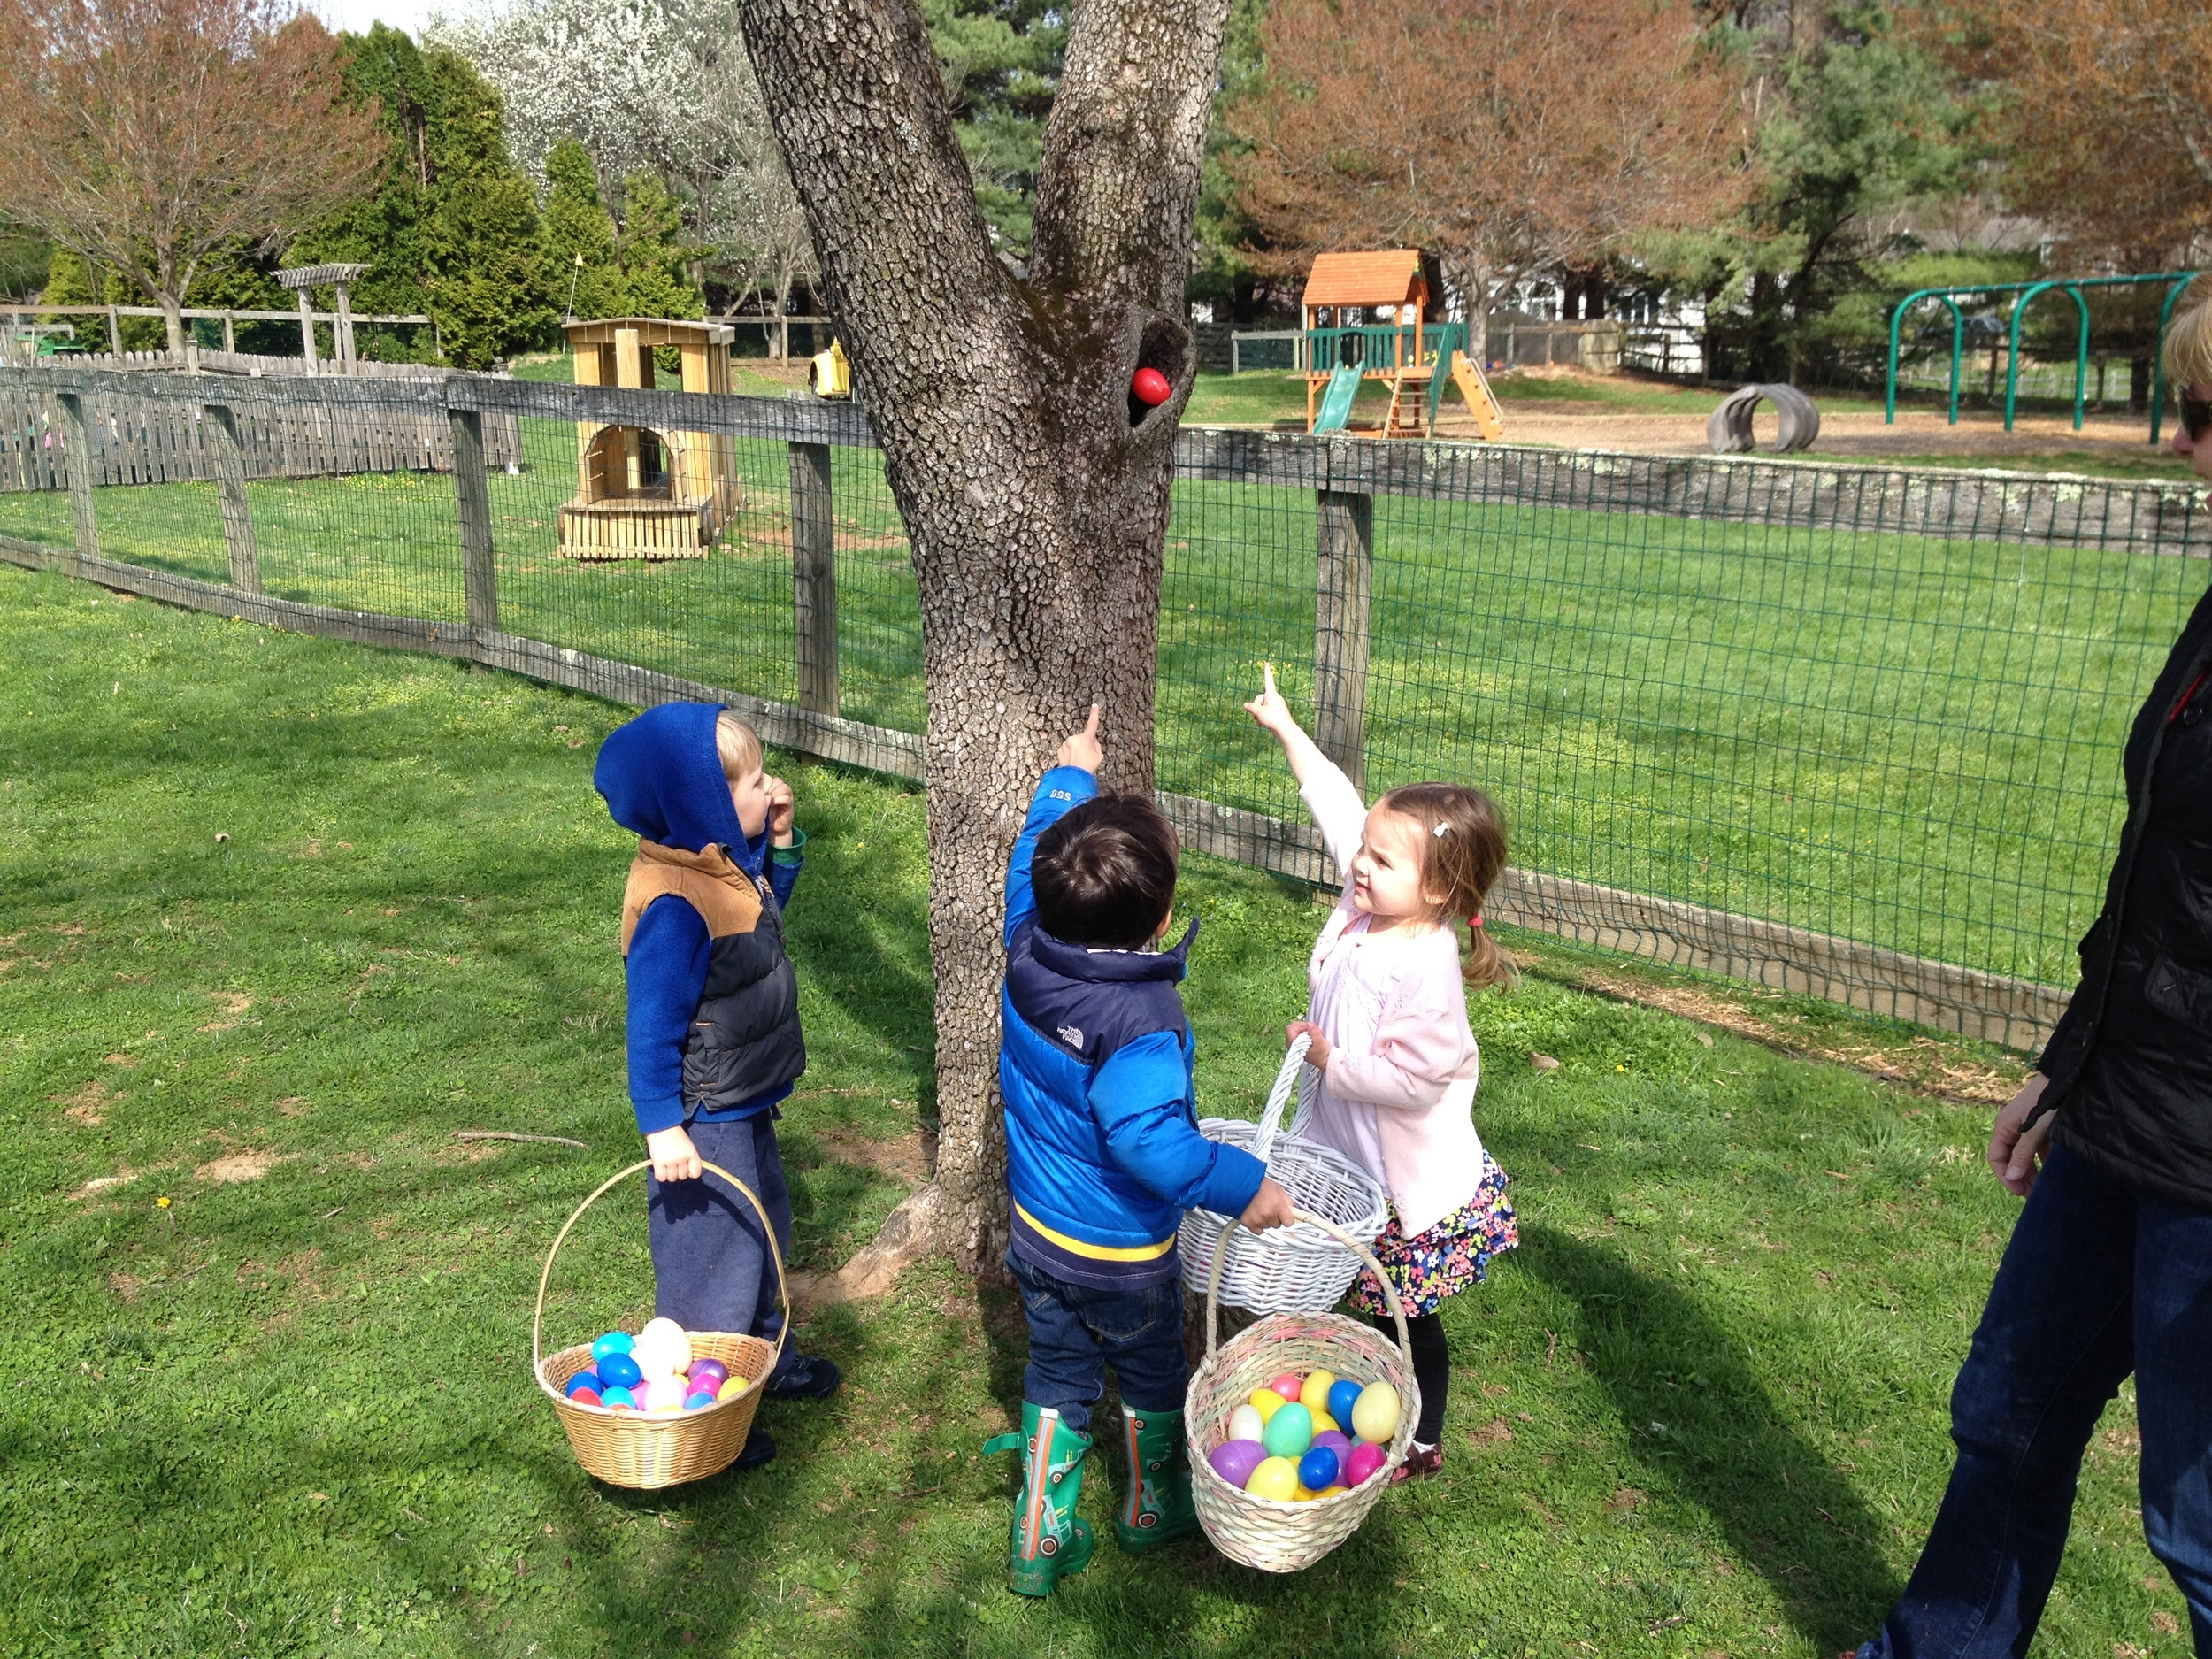 Look-- there's an egg hiding in the tree!